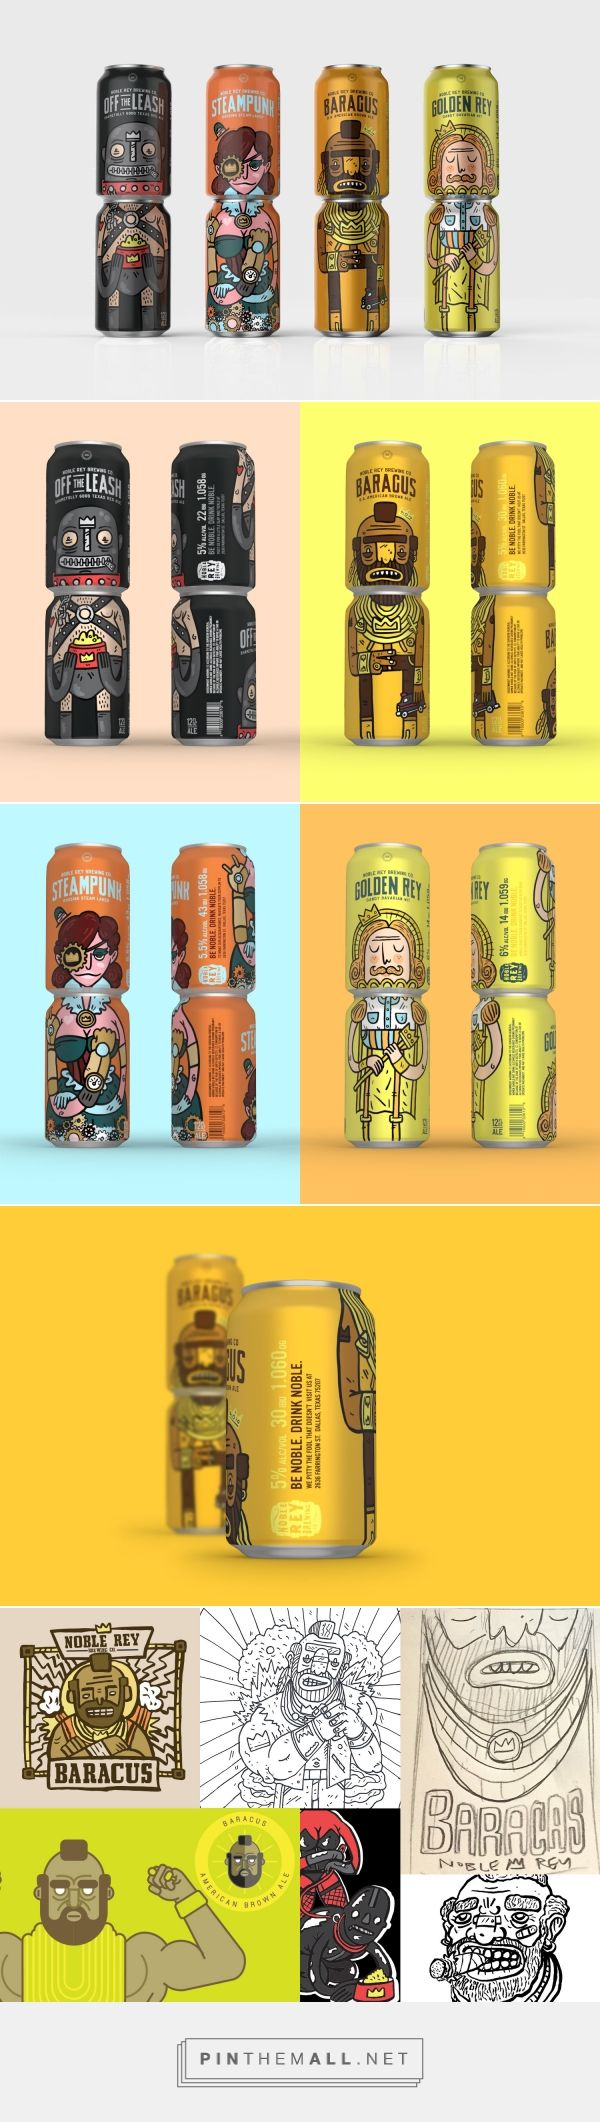 Noble Rey Brewery Co. Cans - cute beer packaging design by Magnificent Beard (USA) - http://www.packagingoftheworld.com/2016/07/noble-rey-brewery-co-cans.html